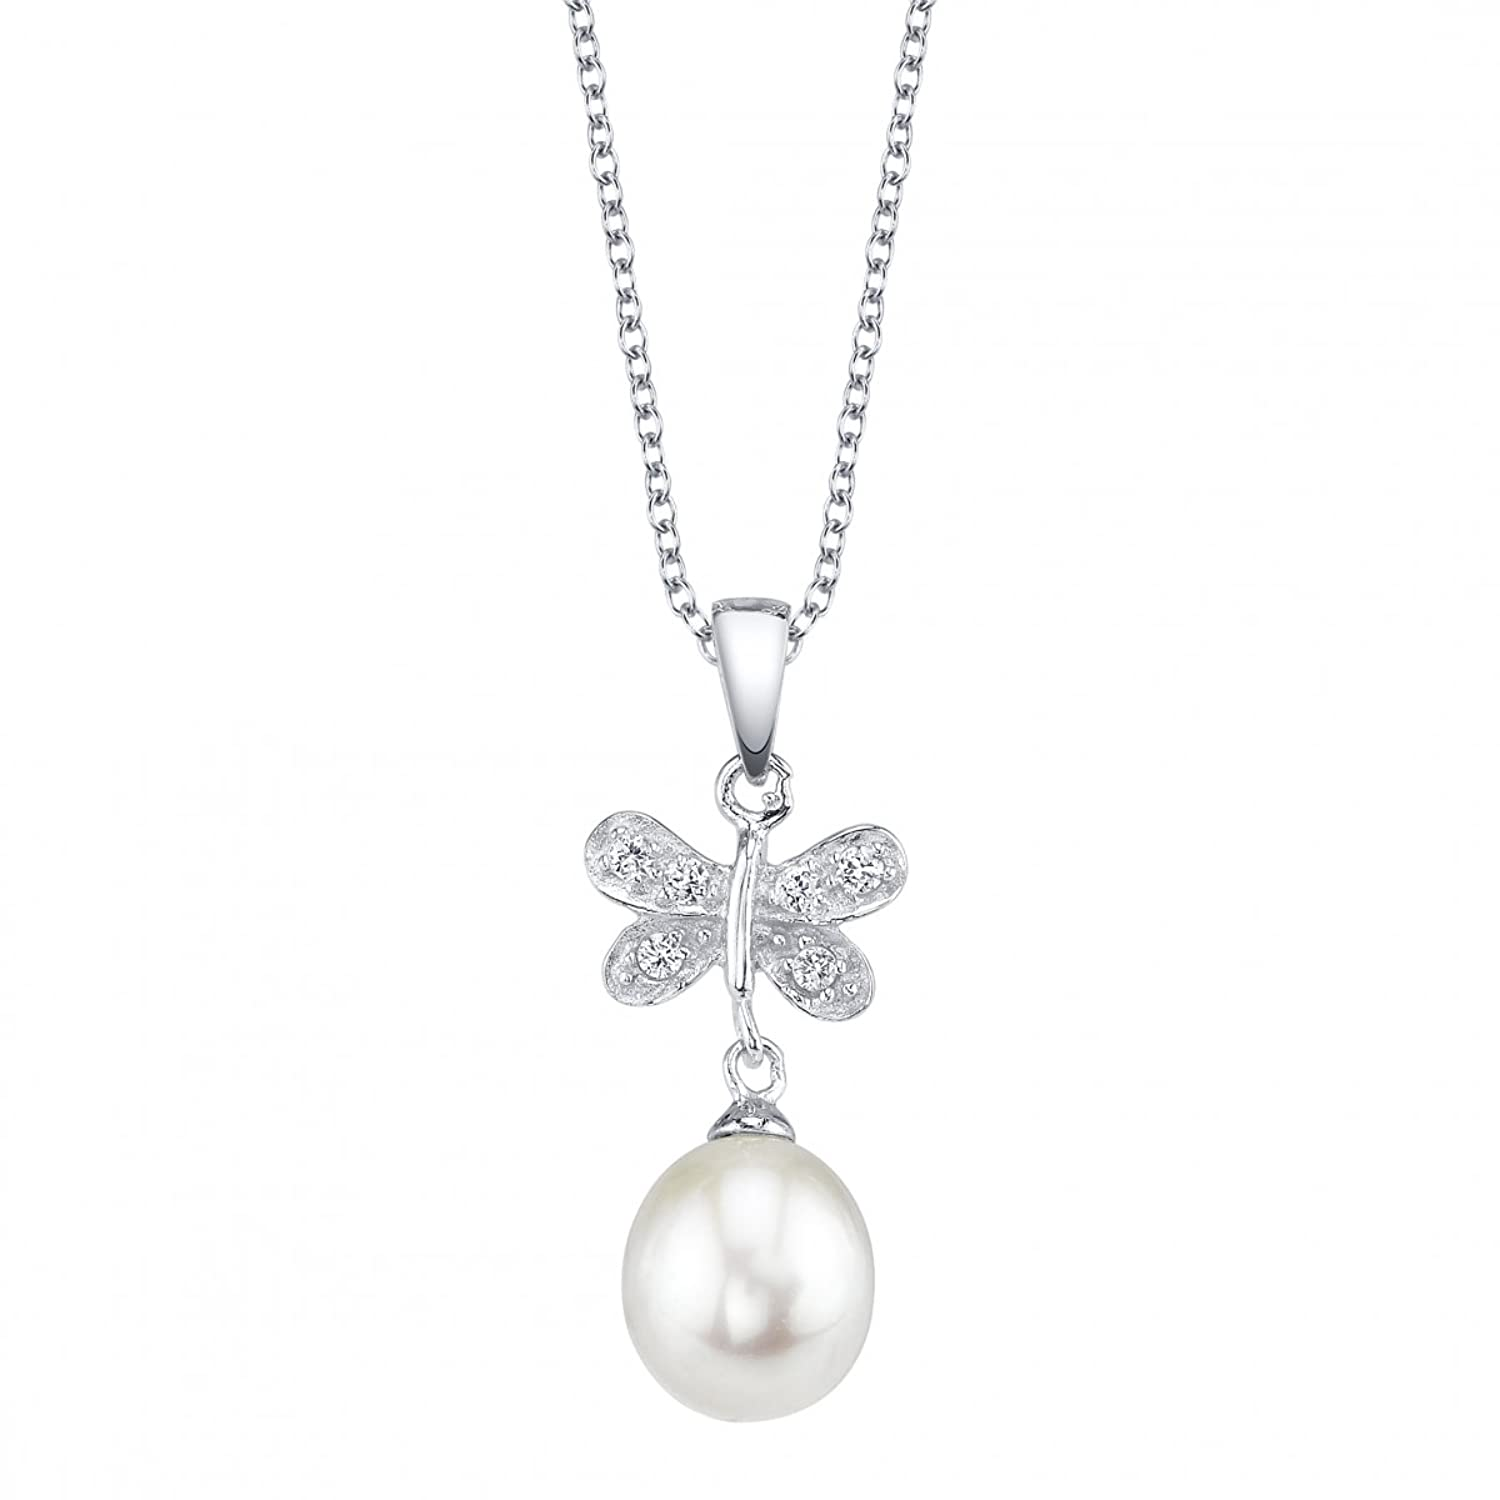 """8mm White Freshwater Cultured Pearl & Crystal Chrissy Pendant, 14"""" Children's Chain"""